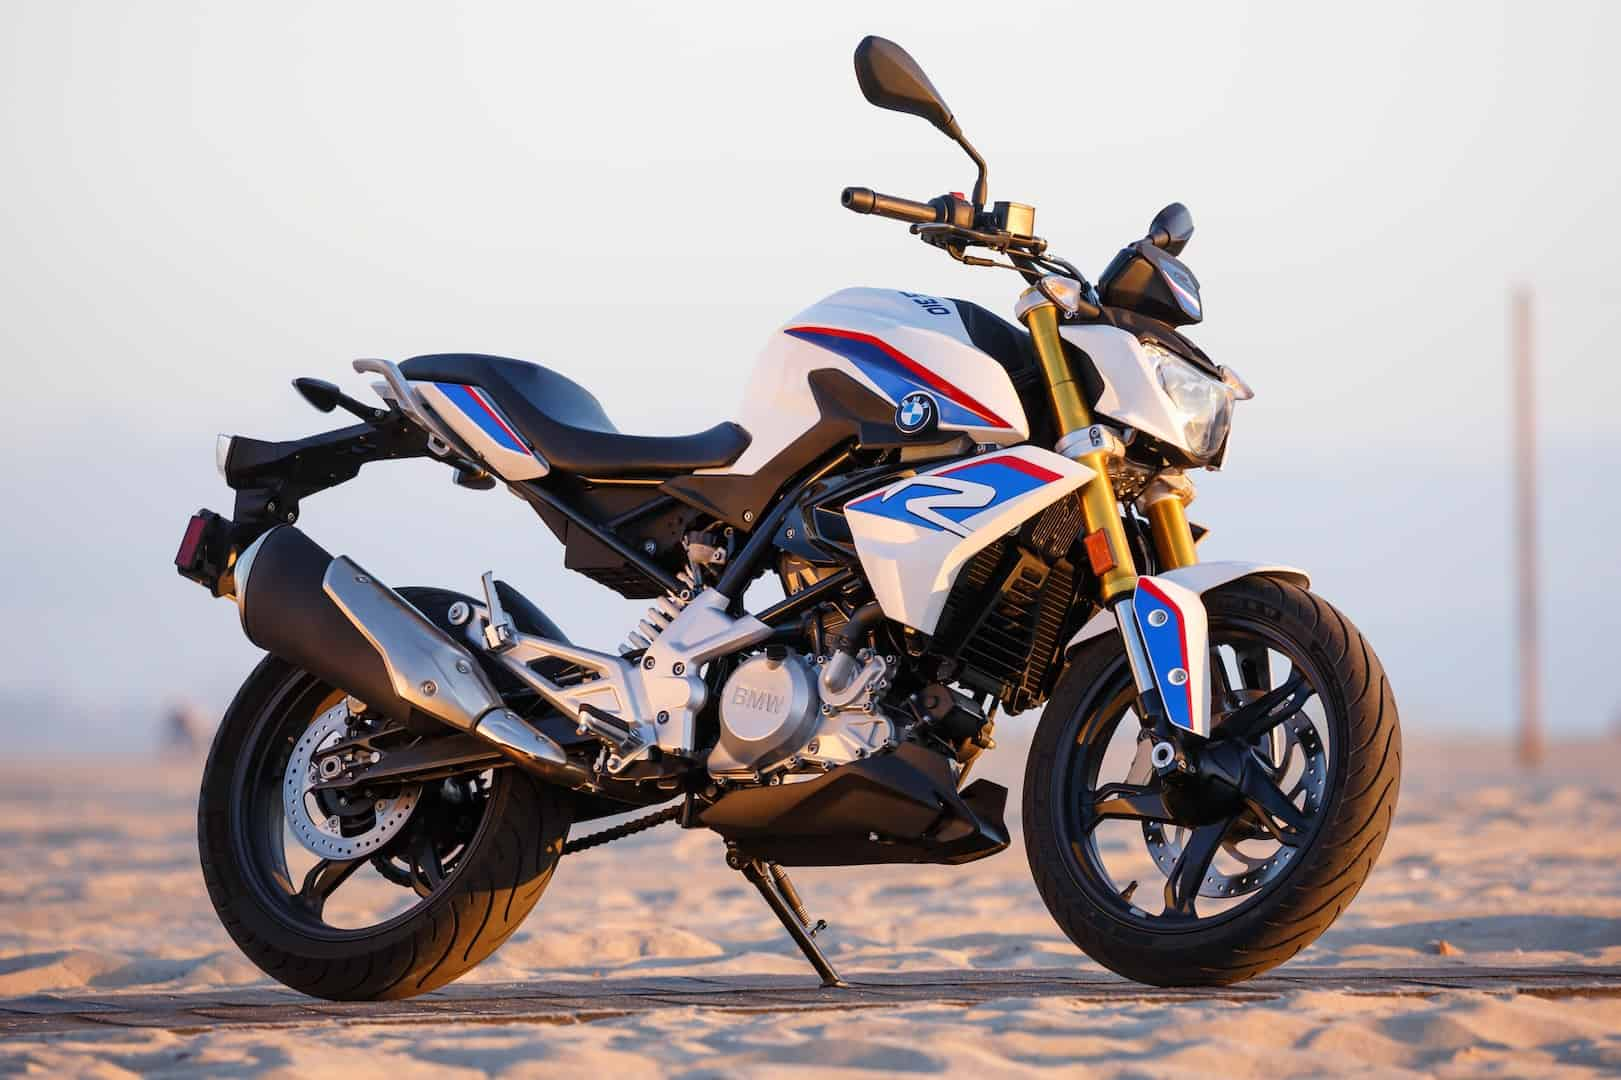 BMW G310R – commuter motorcycle